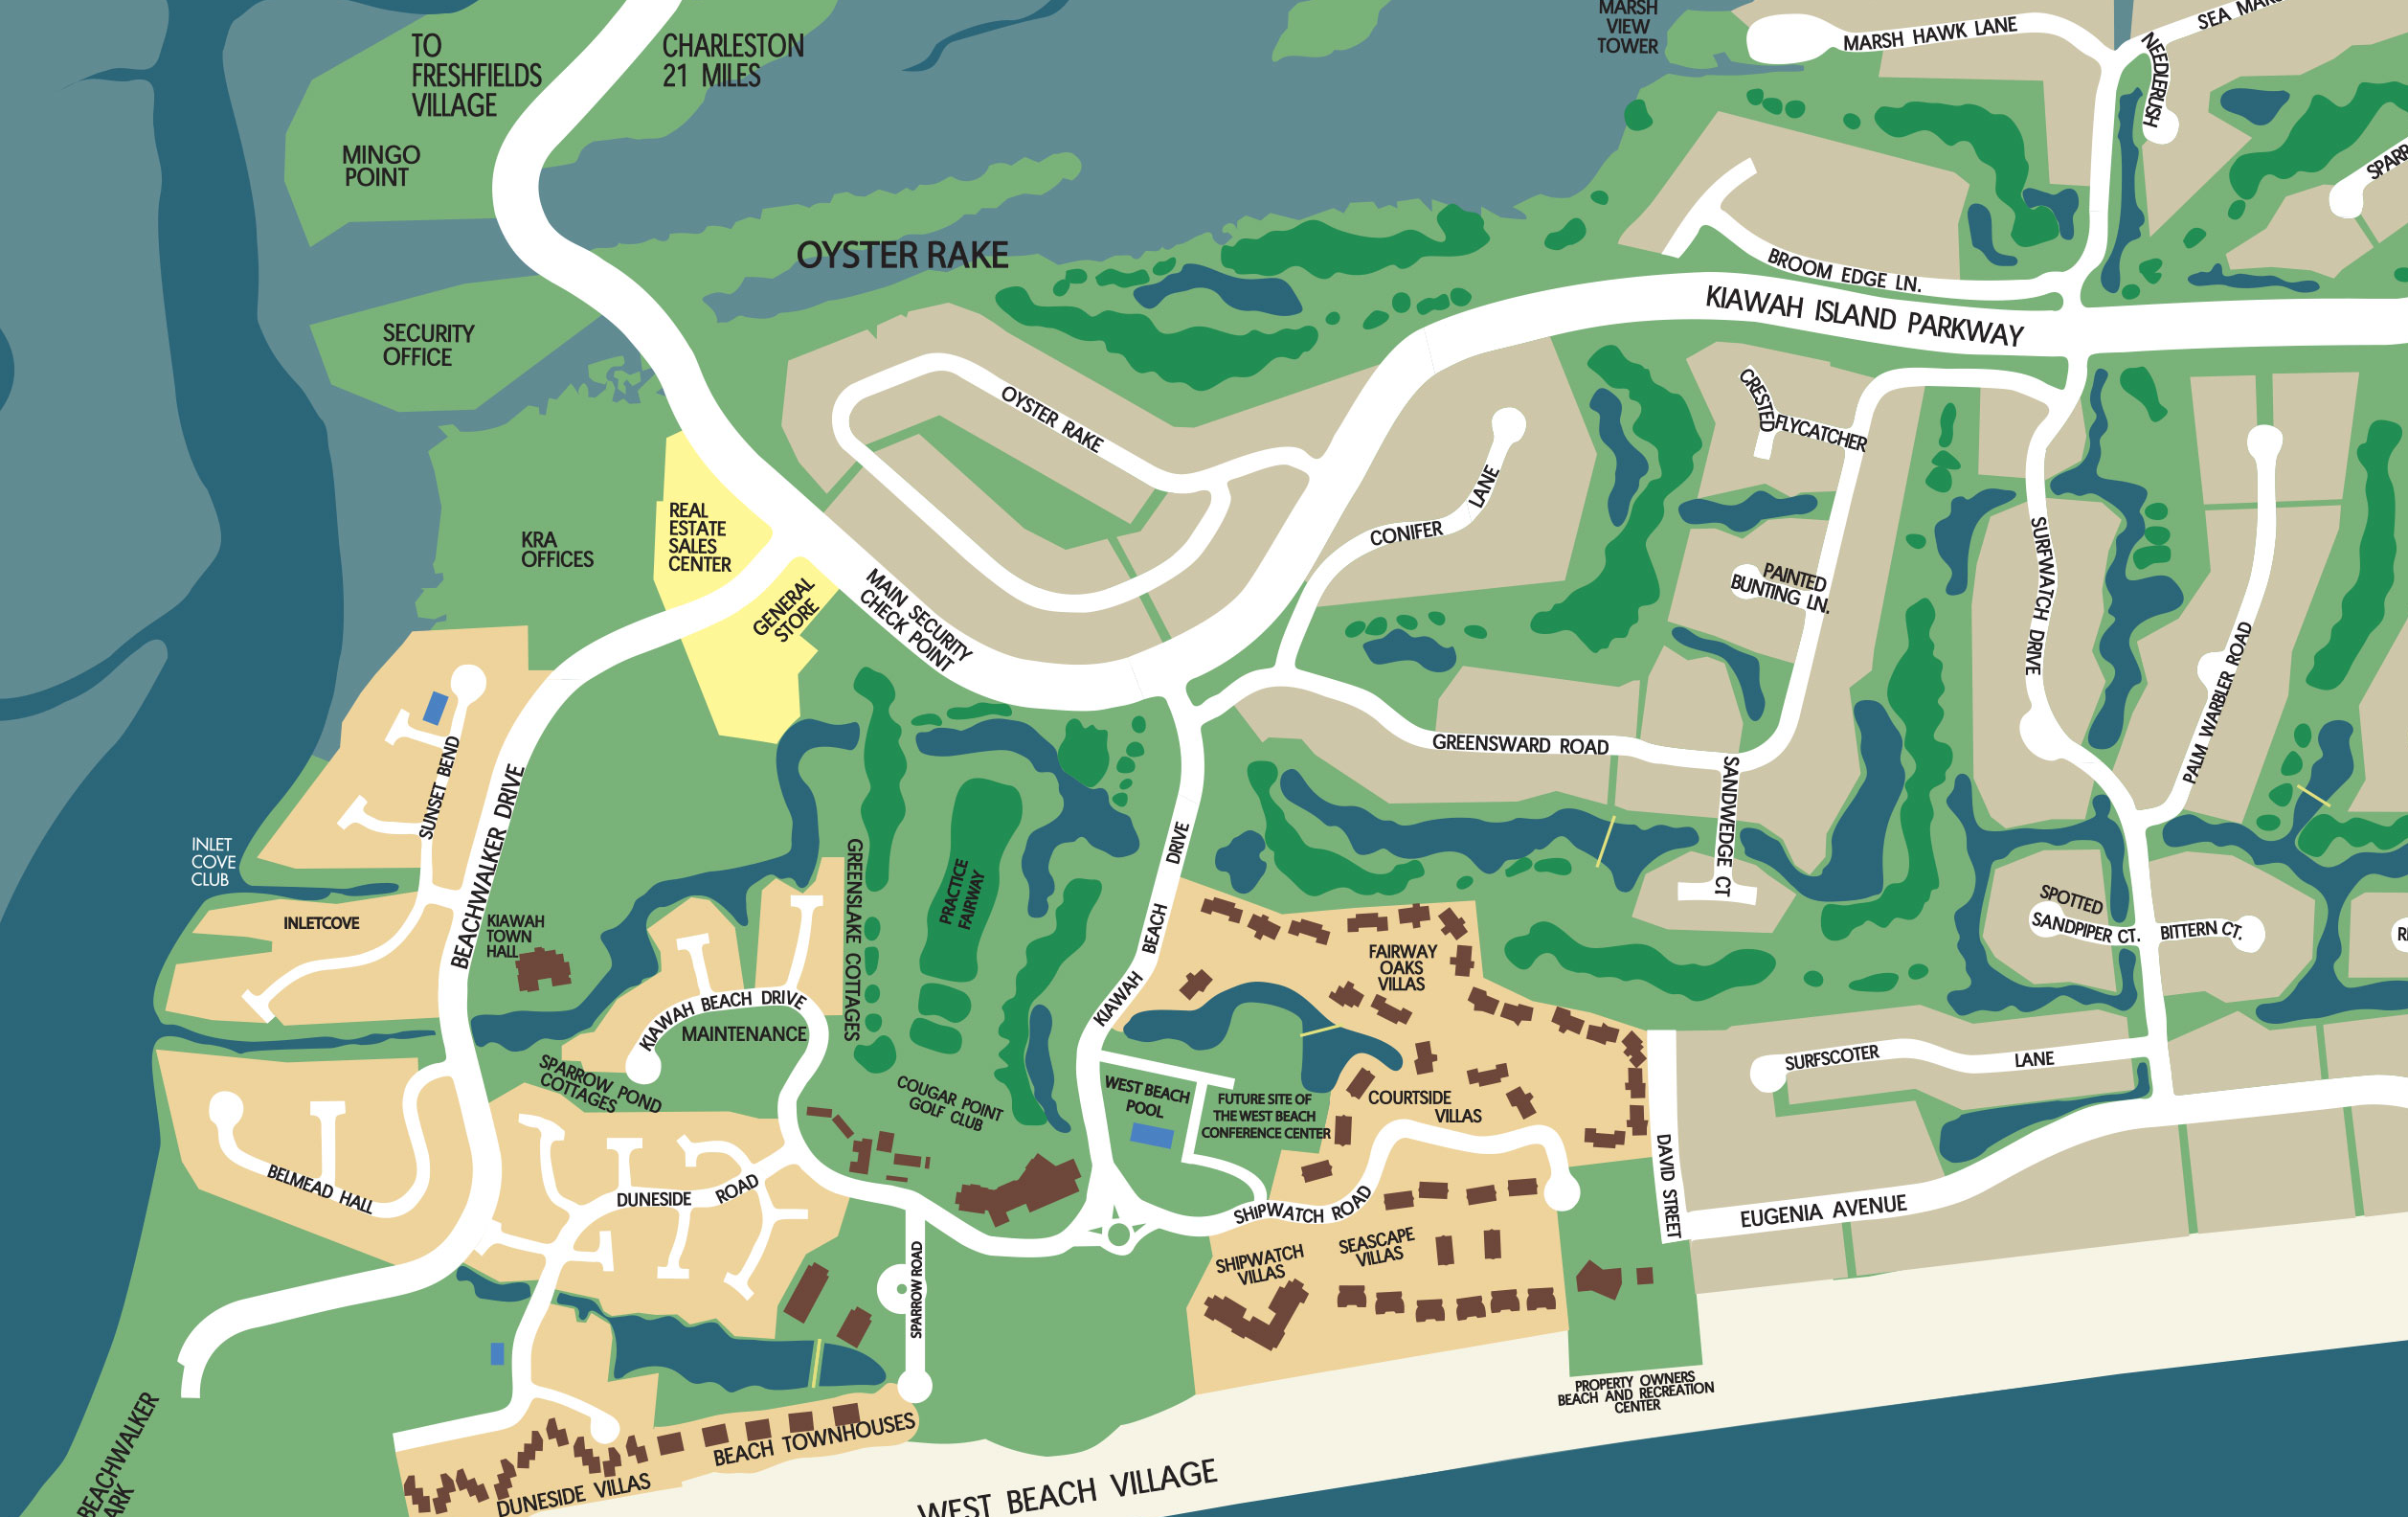 Kiawah Island Interactive Map | Kiawah Island Golf Resort on sea pines bike path map, rapid city bike path map, hilton head bike path map, hilton head island bicycle trail map, sea pines bike trail map, florida bike path map, buffalo bike path map, dillon bike path map, san francisco bike path map, lancaster bike path map, charleston neighborhood map, massachusetts bike path map, las vegas bike path map, fripp island bike path map, johnston bike path map, atlanta bike path map, hilton head island plantations map, martha's vineyard bike path map, georgia bike trails map, sanibel island map,